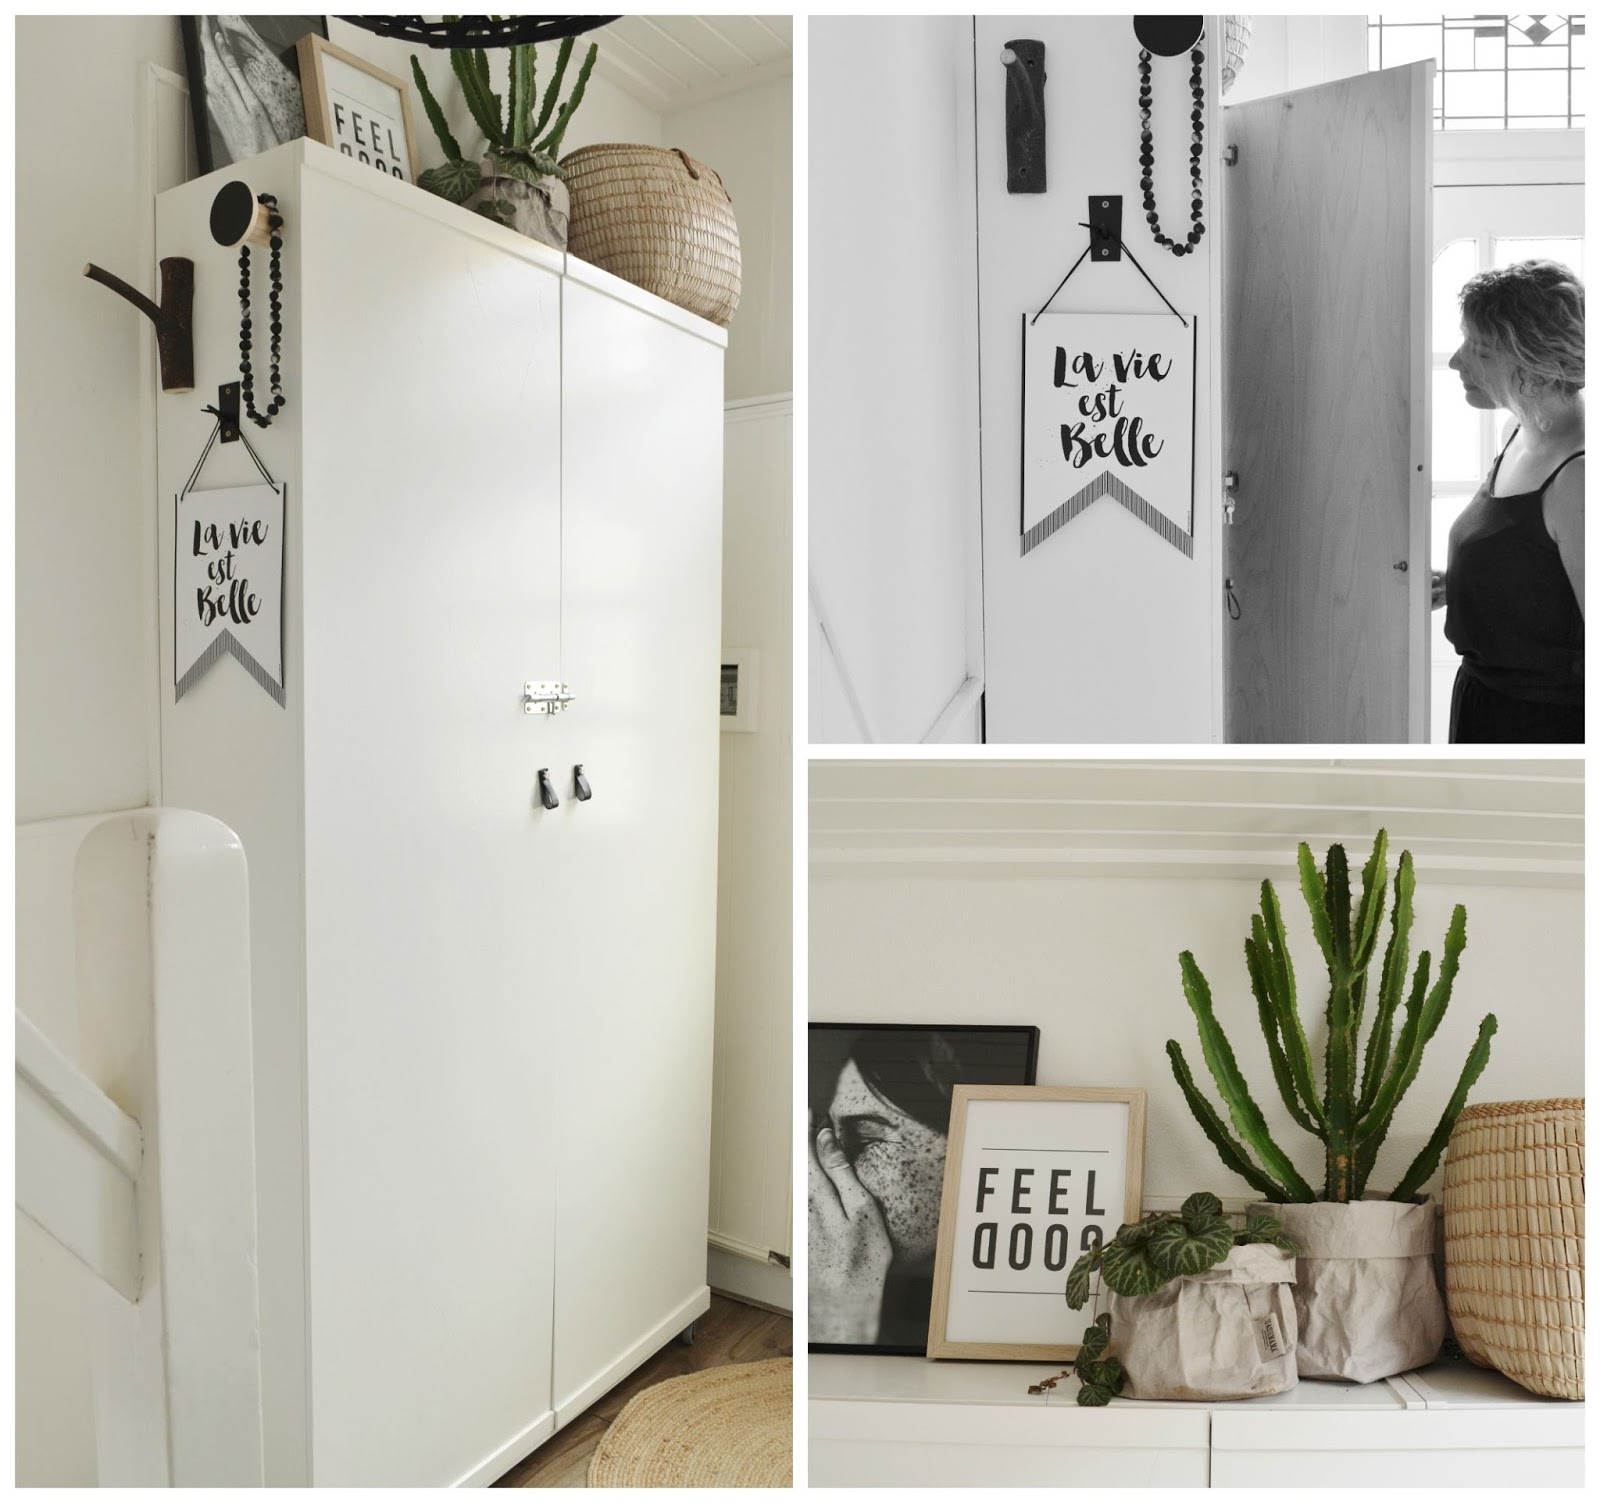 Diy ikea hack: kast voor in de gang